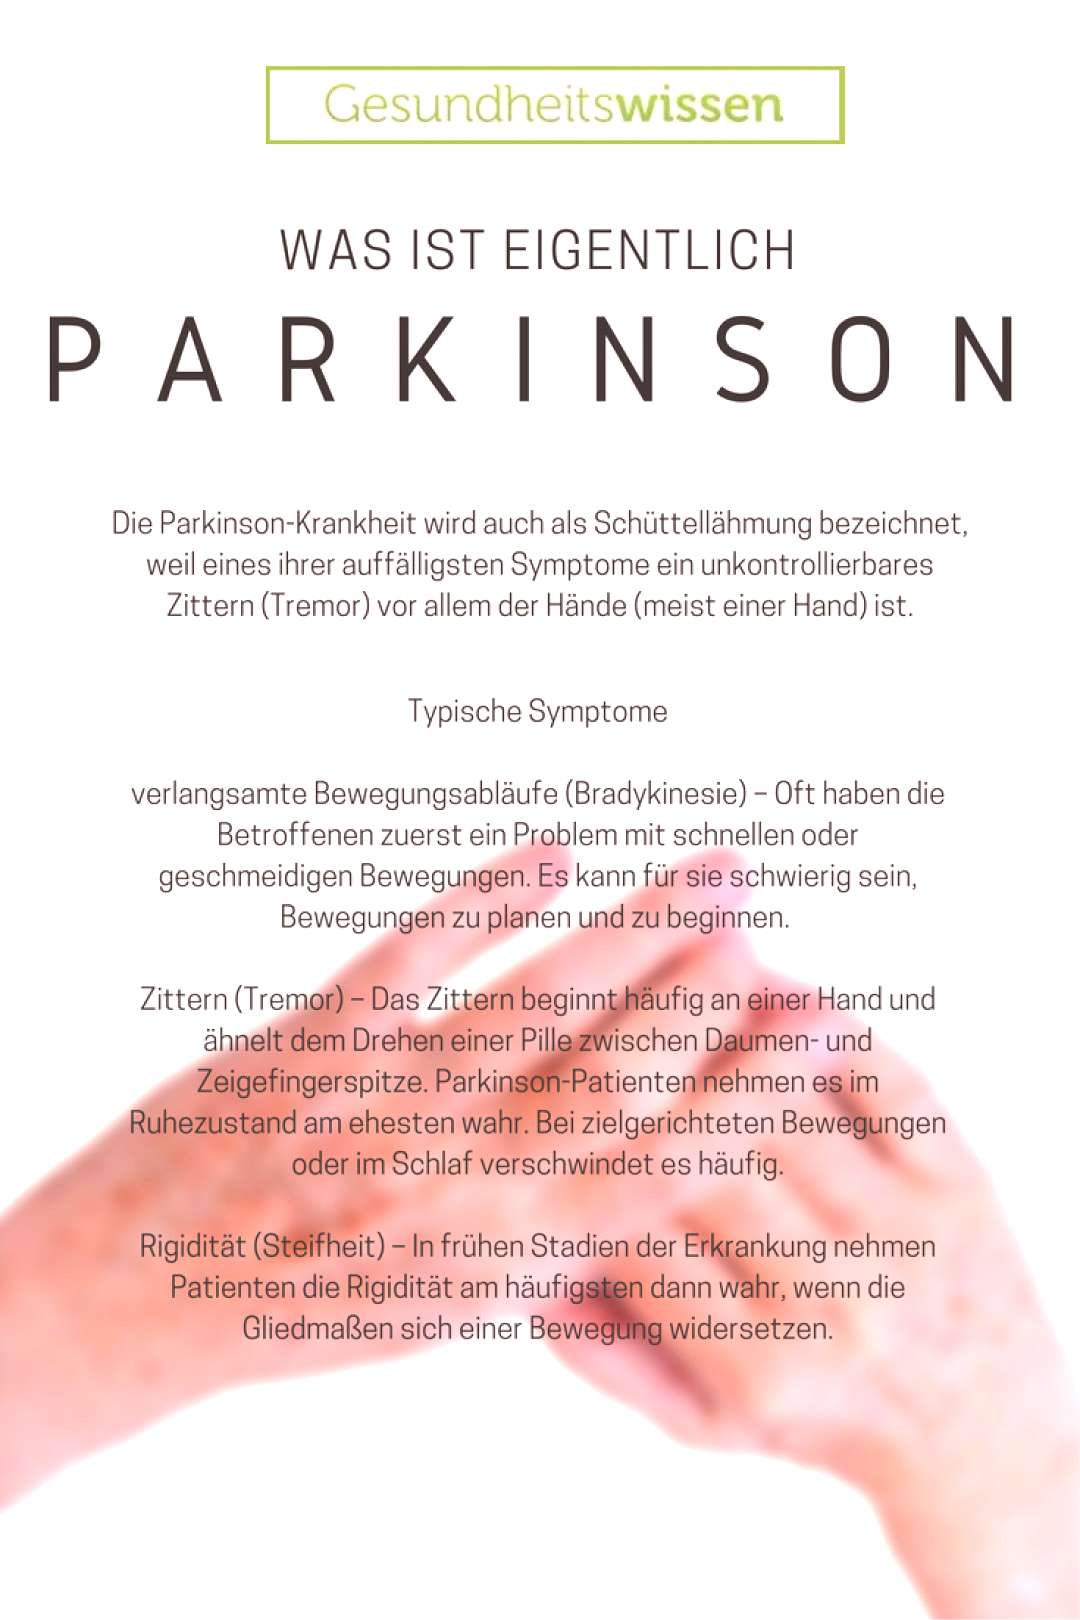 Parkinson's disease, known by doctors as Parkinson's disease, is one of the ... -  Parkinson's dise